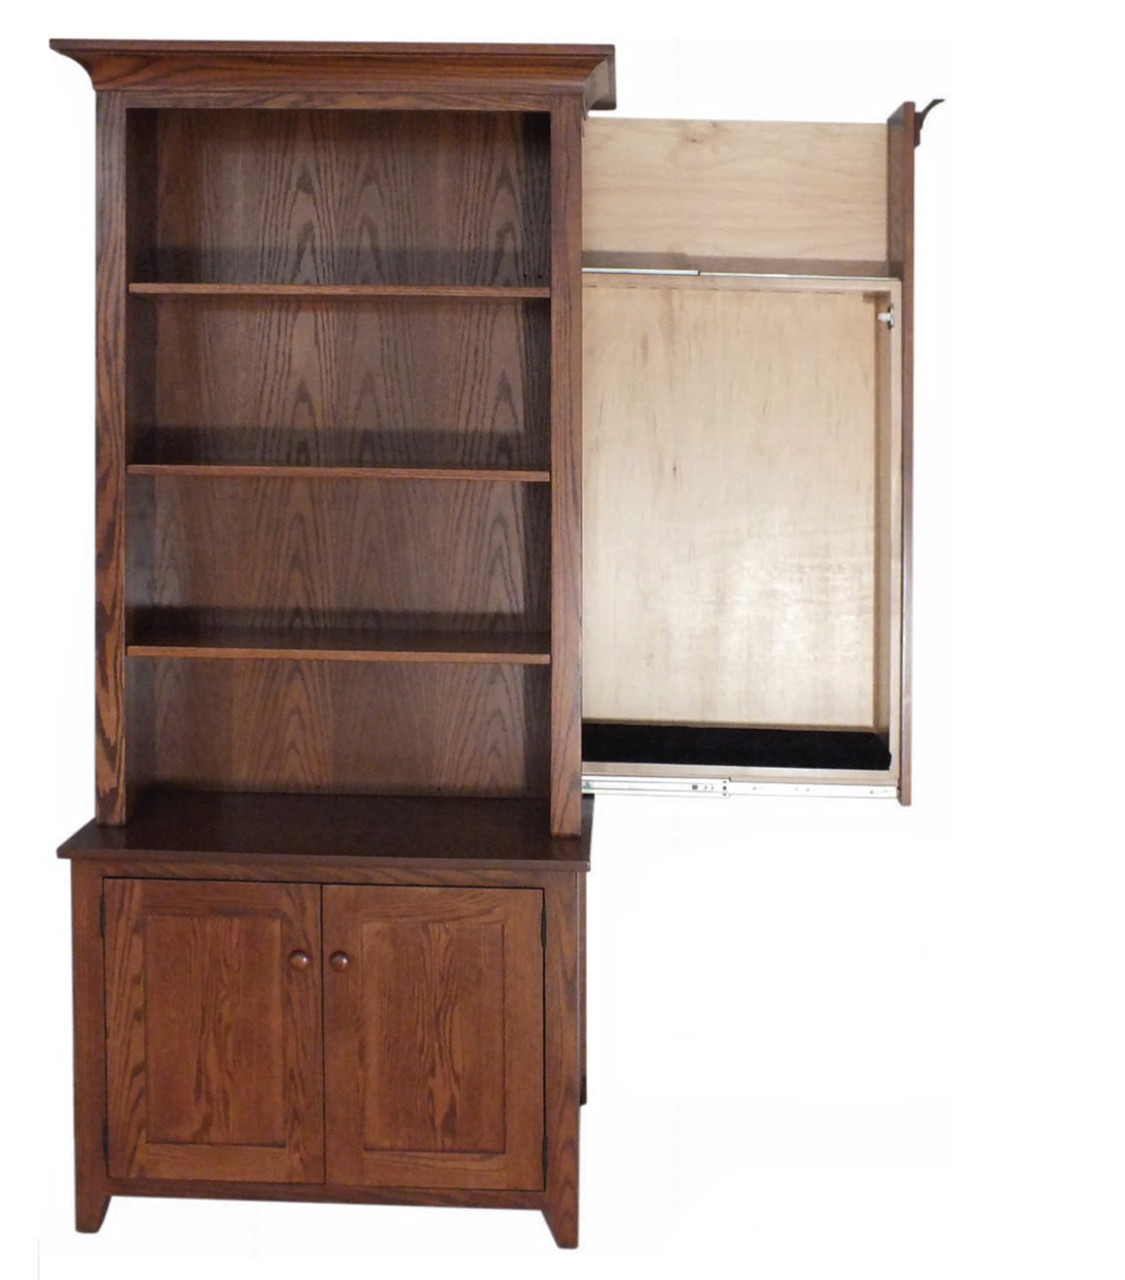 Outstanding Bookcase W Hidden Gun Cabinet Ii Cherry Valley Furniture Download Free Architecture Designs Intelgarnamadebymaigaardcom